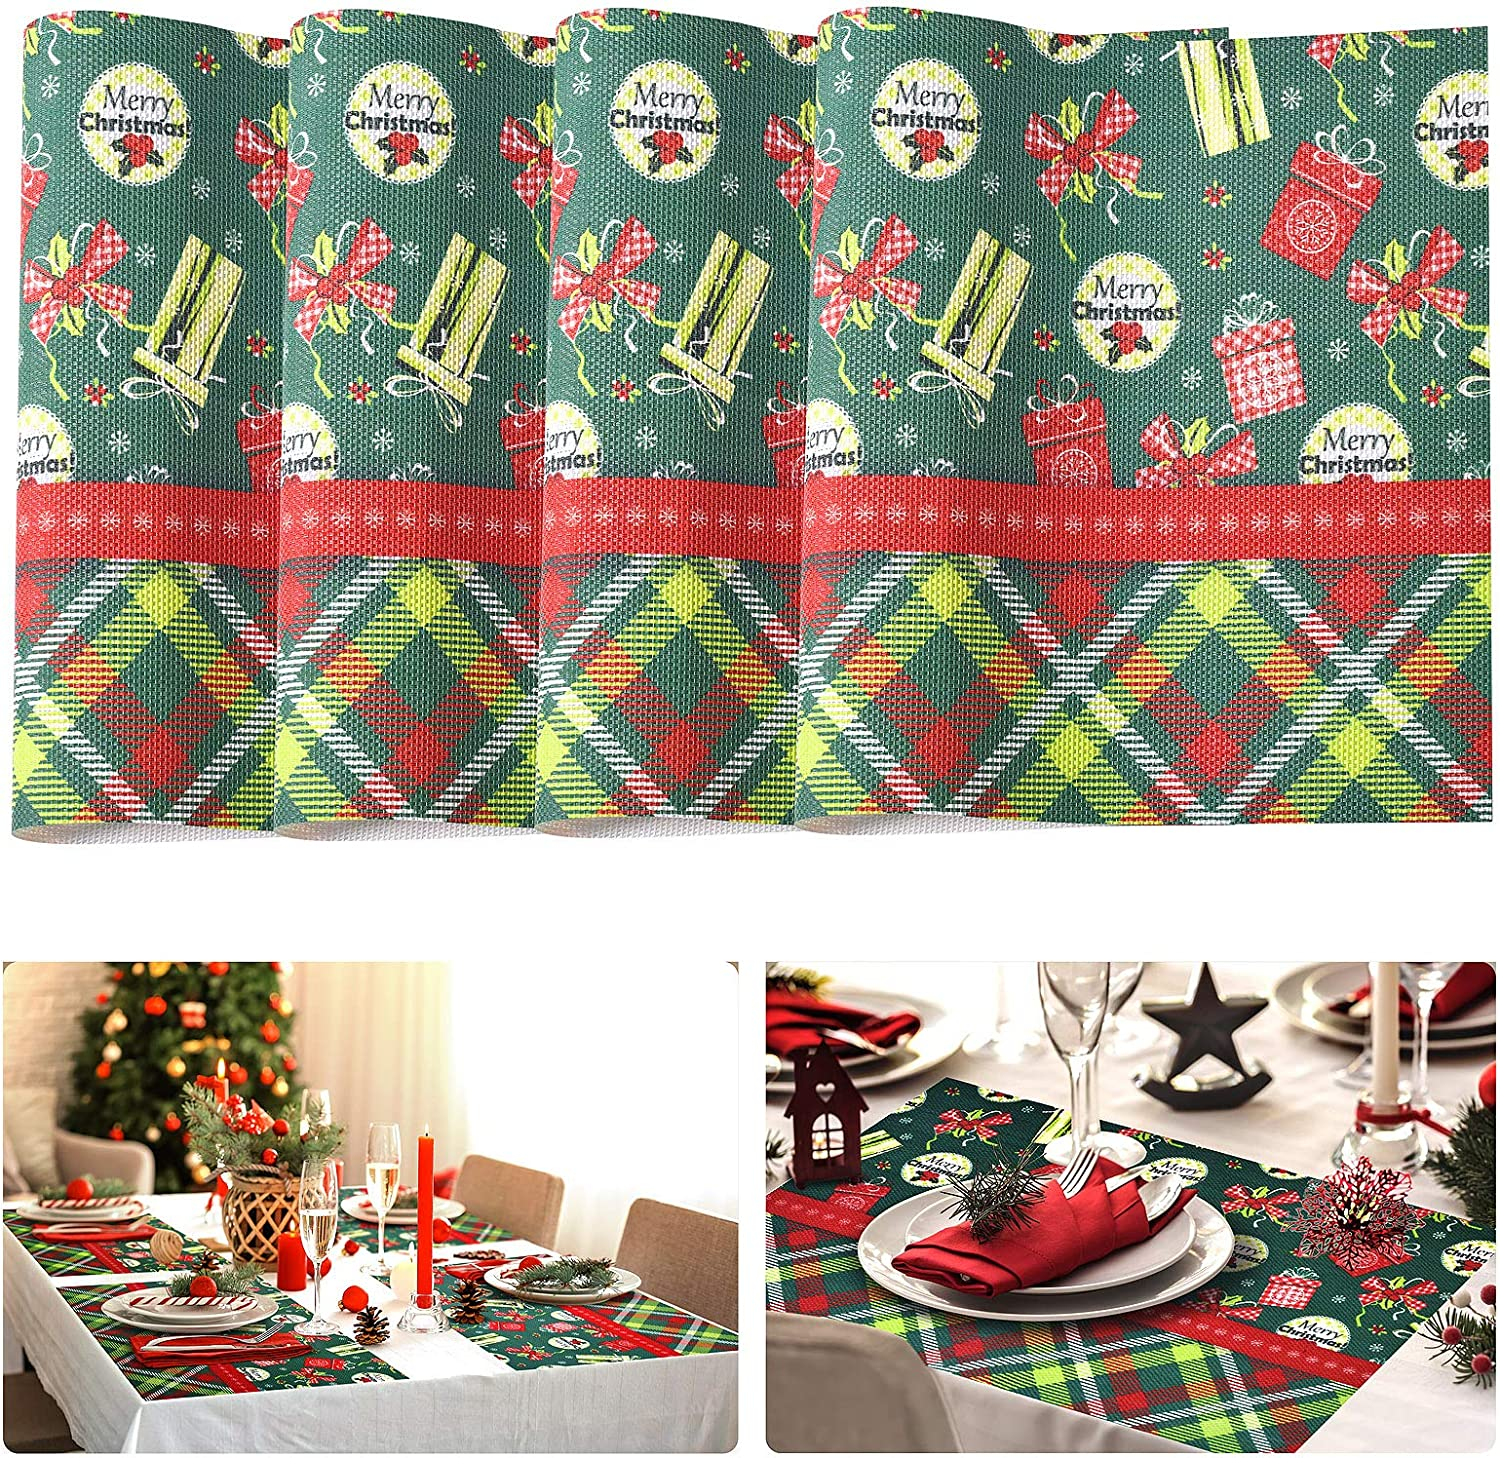 Tohsssik Christmas Placemats Set of 4, Placemats for Dining Table Box Printed, Non-Slip Place Mats Holiday Christmas Table Decorations, 17.7 x 11.8 Inch